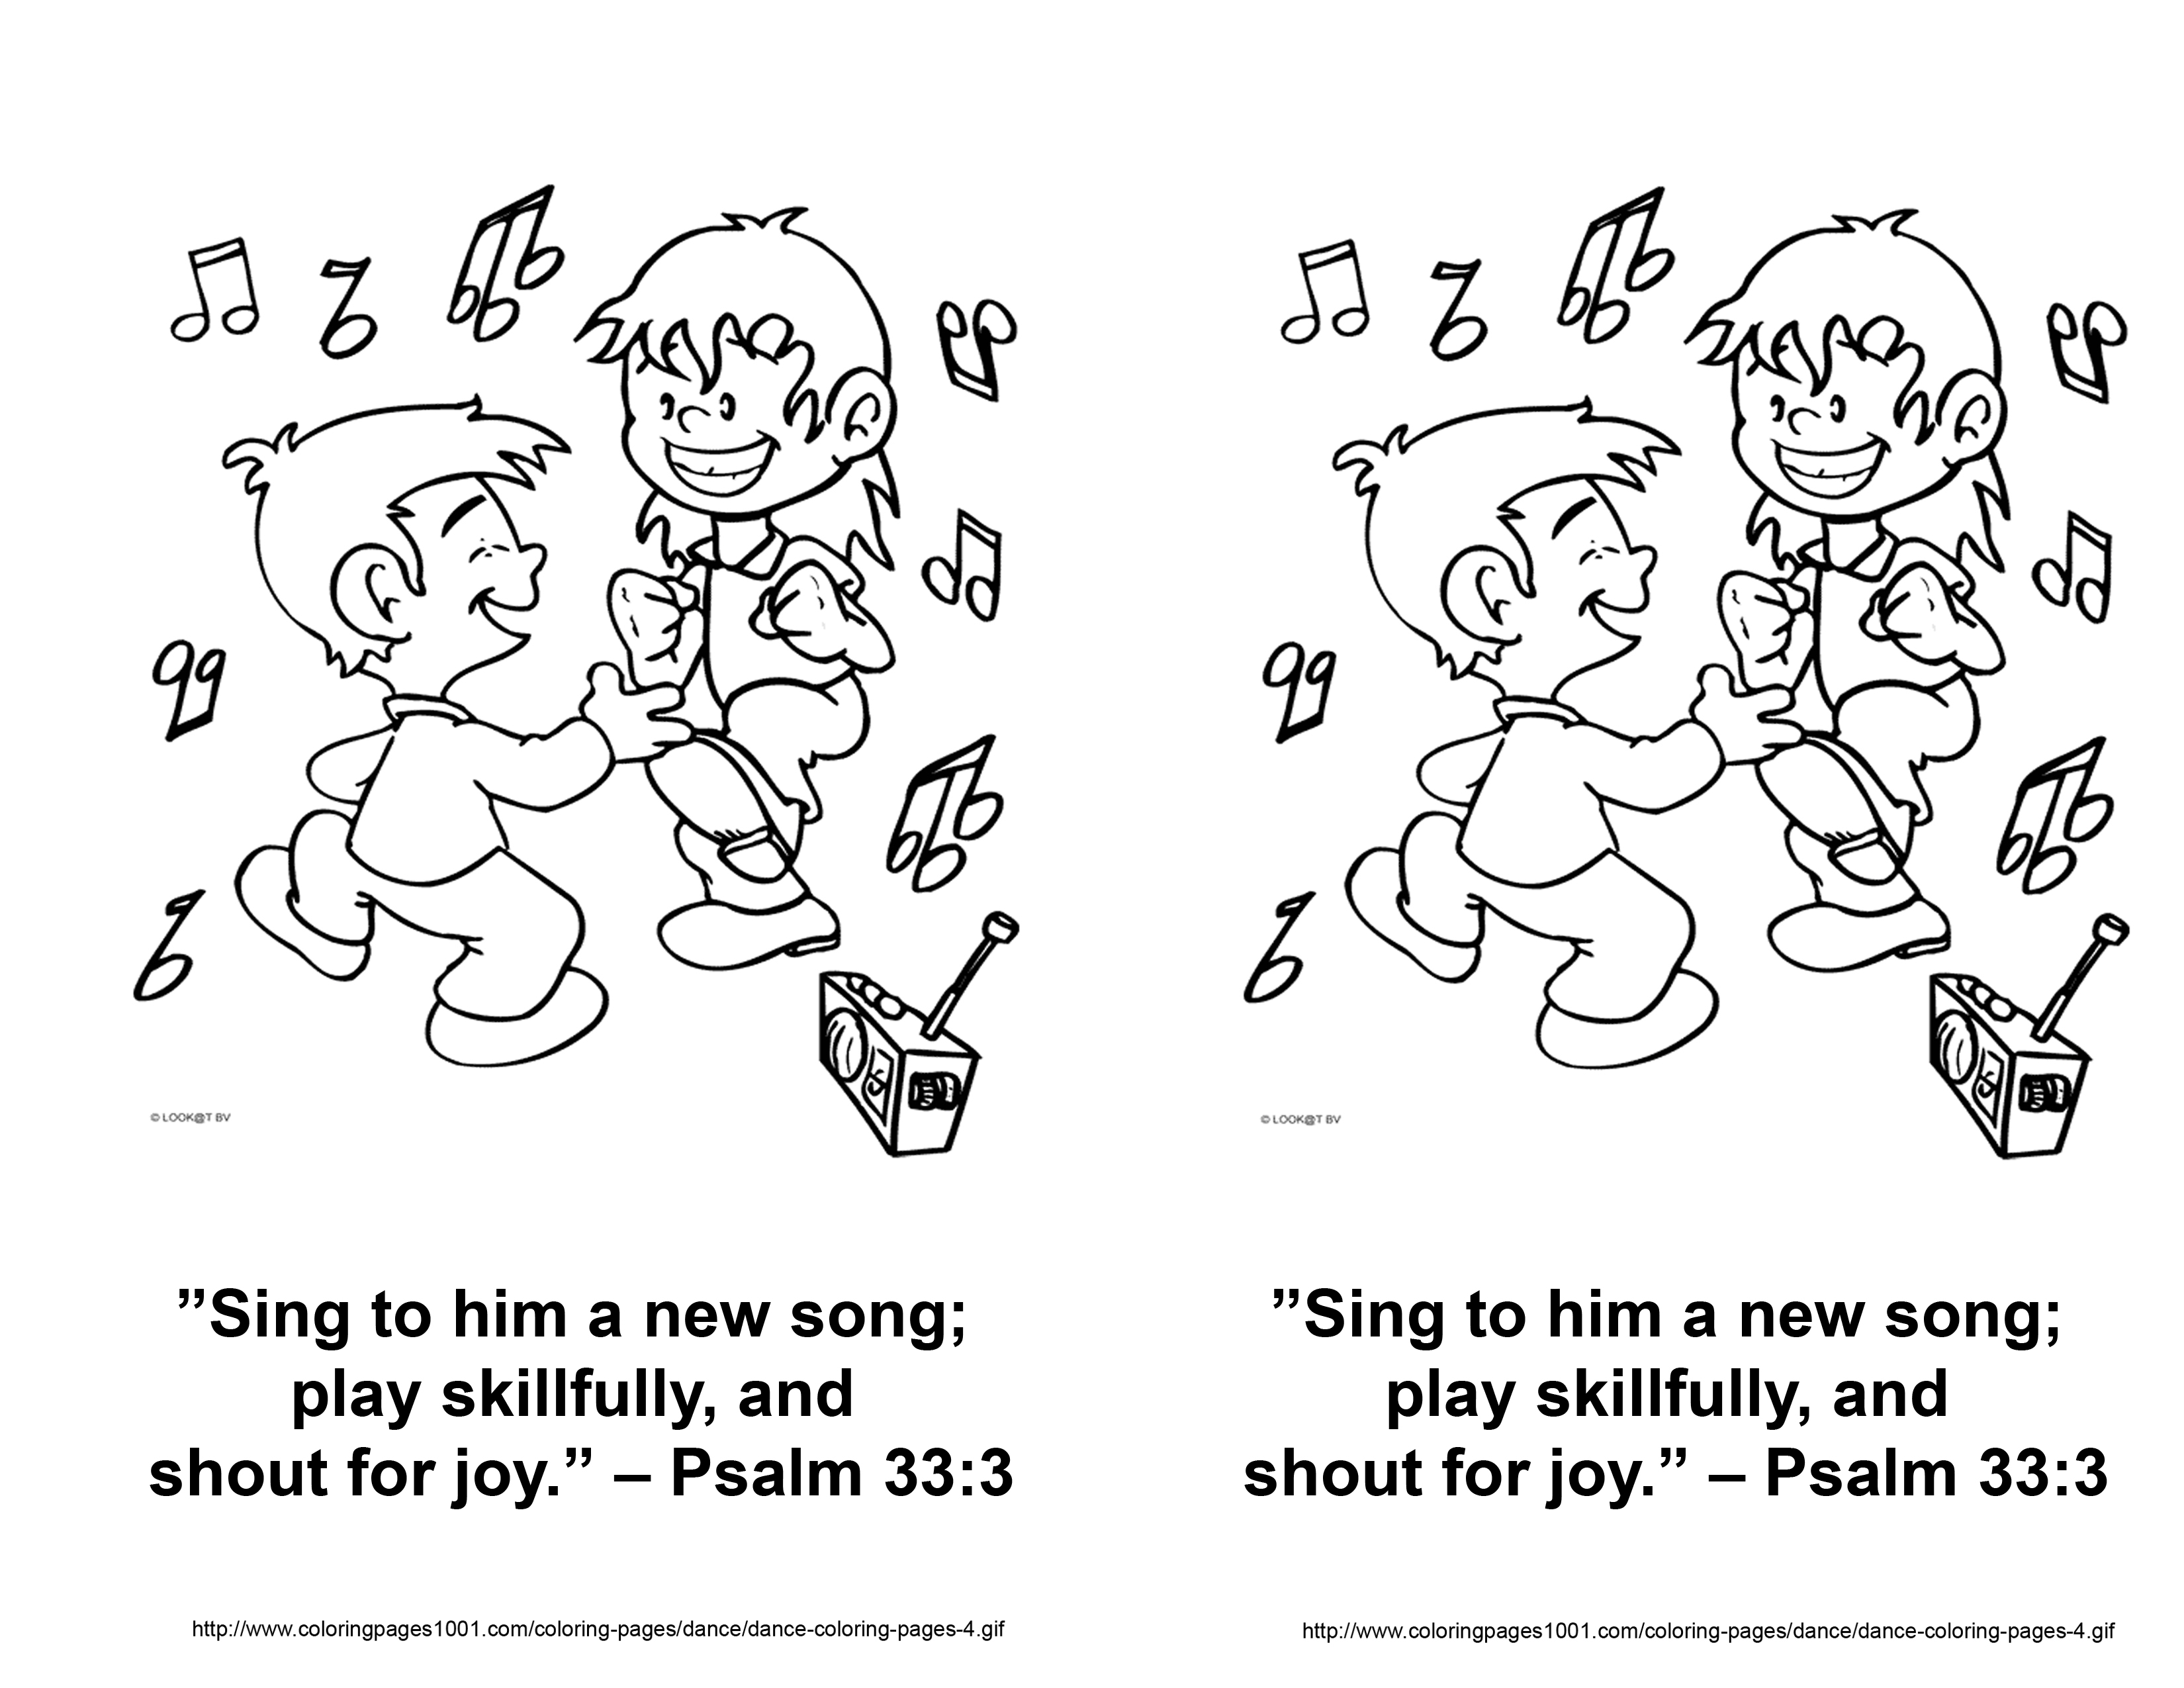 aug 19 2013 psalm 33 3 coloring pagew480h371 christian fearfully